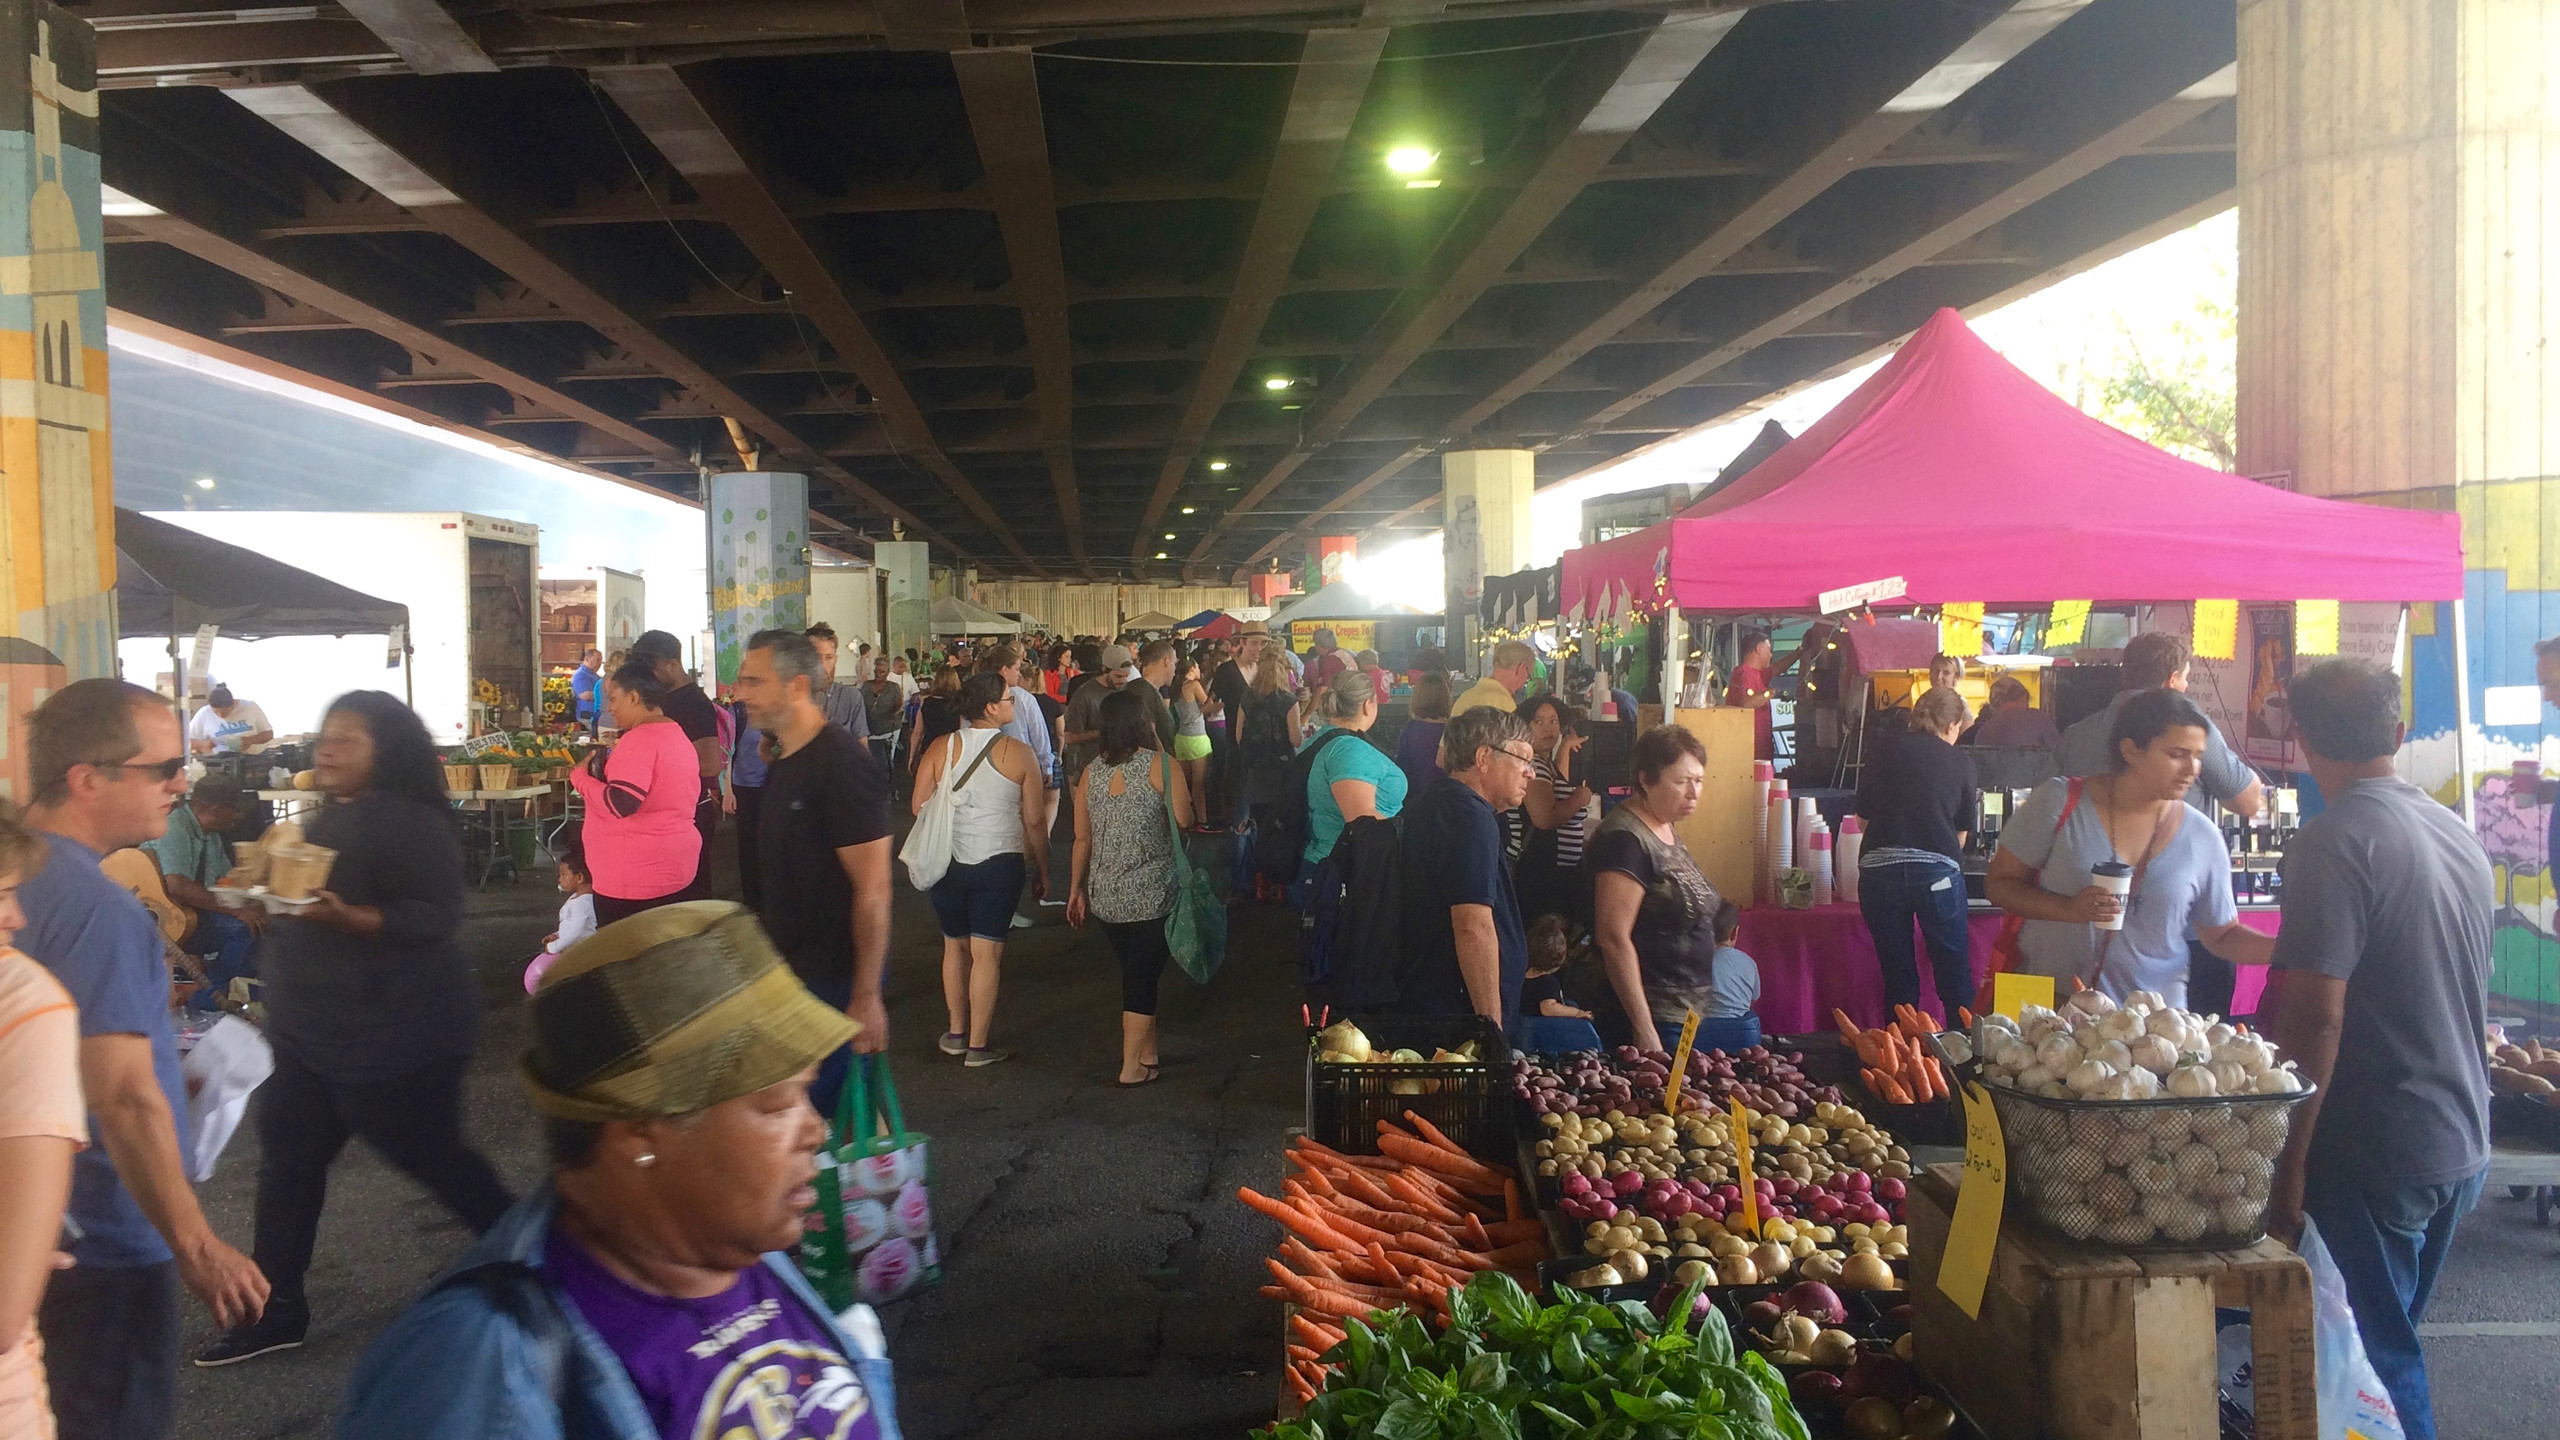 Folks come from all over Baltimore to this market